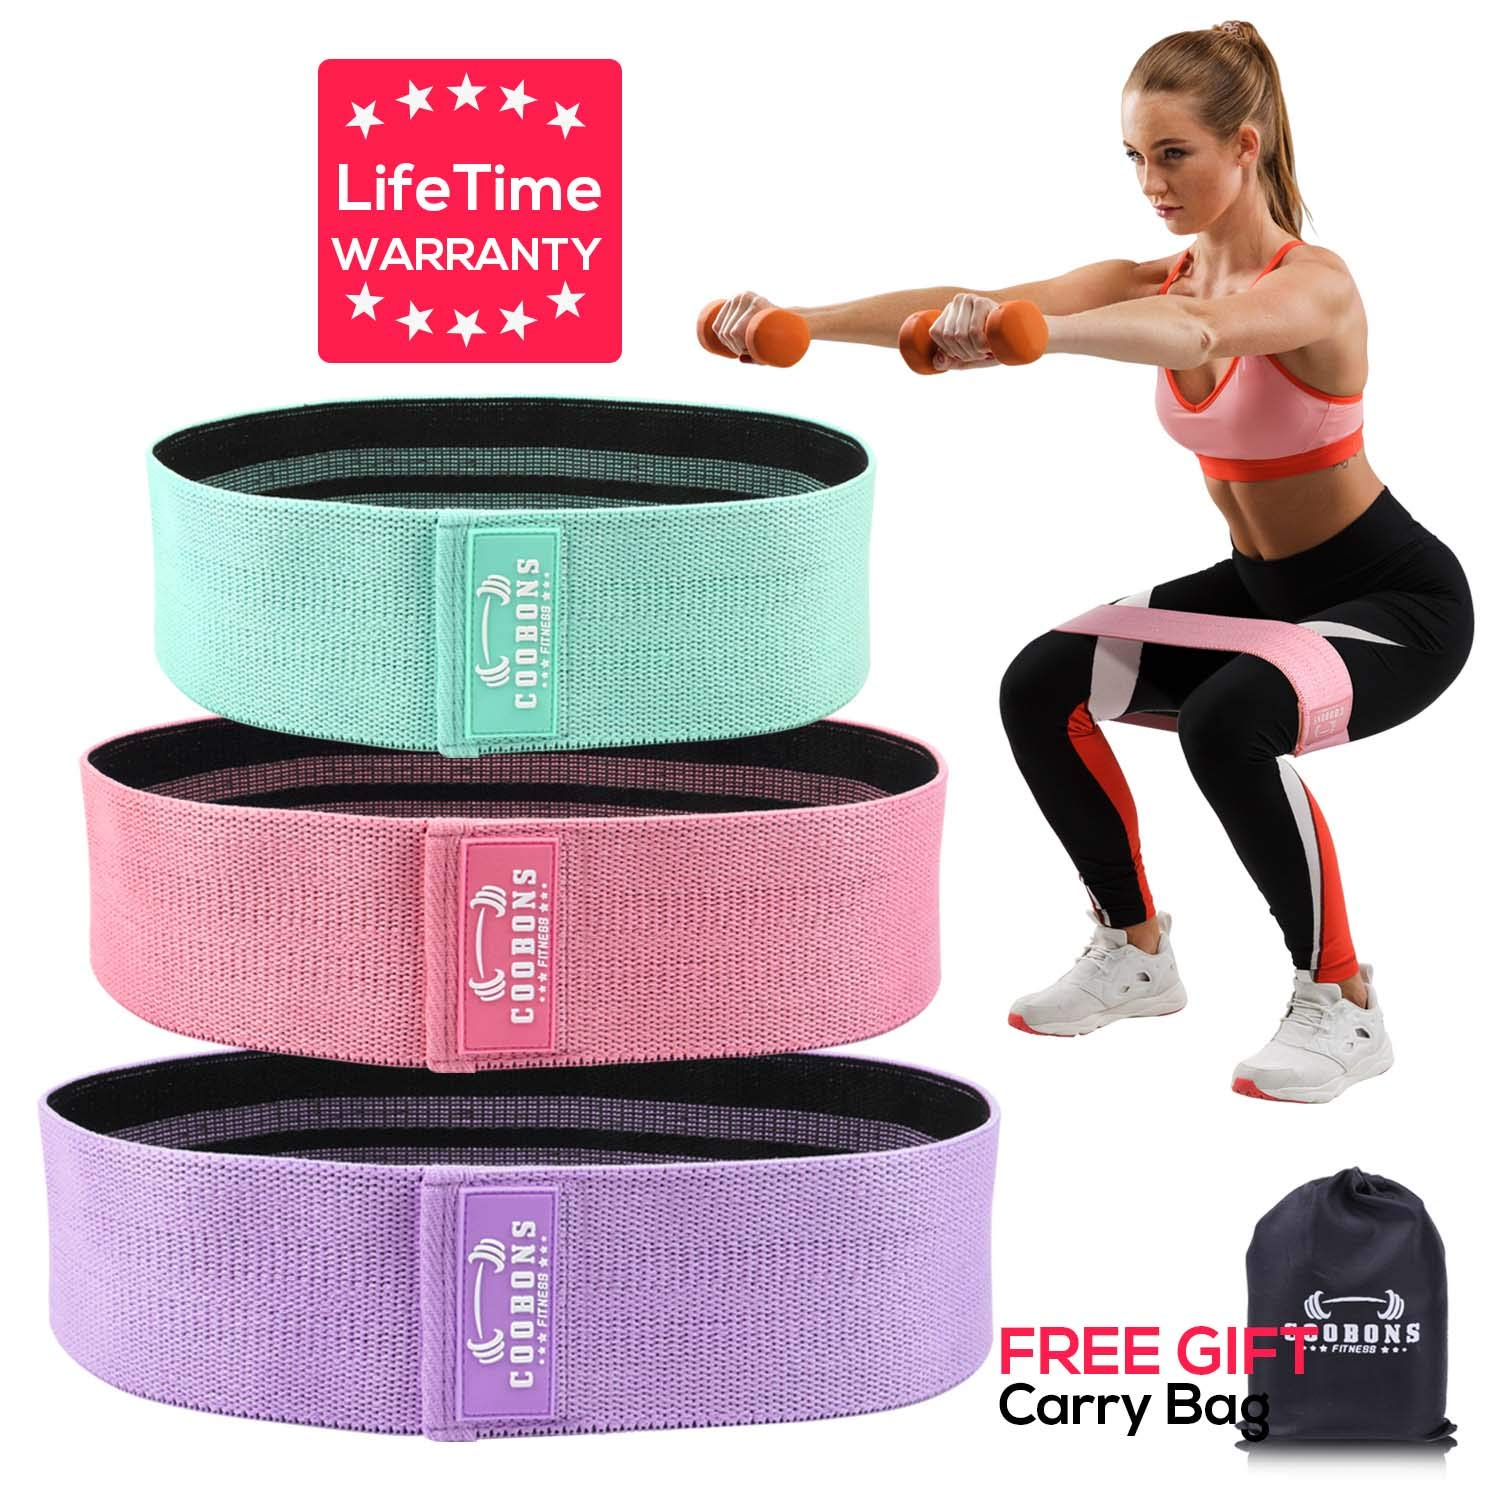 COOBONS Resistance Bands for Legs and Butt,Exercise Bands Hip Bands Booty Bands Wide Workout Bands Resistance Loop Bands Anti Slip Circle Fitness Band Elastic Sports Bands Set of 3 (2019 Upgraded)